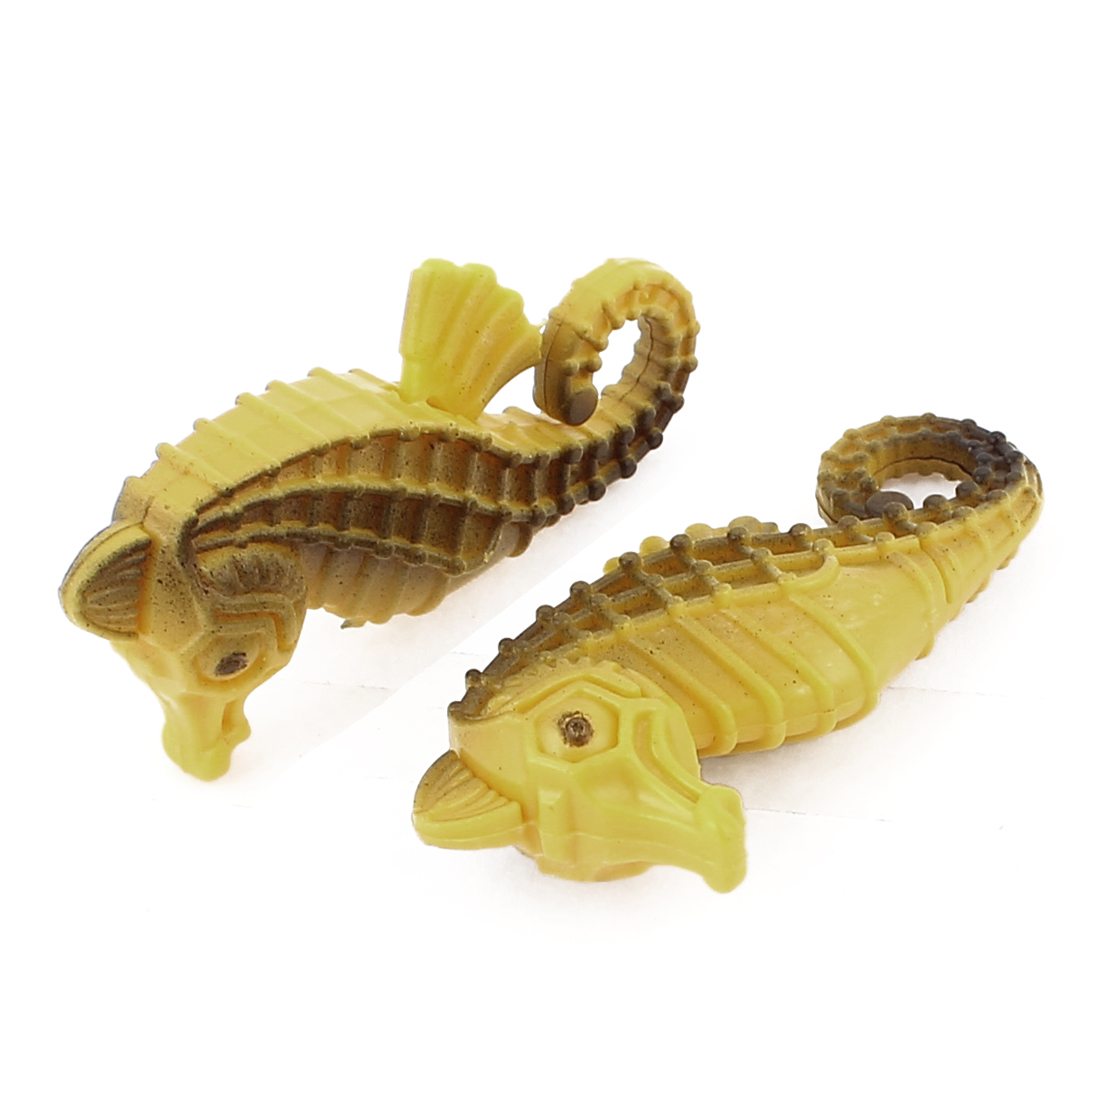 Plastic Artificial Hippocampus Ornament Yellow 2 Pcs for Fish Tank Aquarium